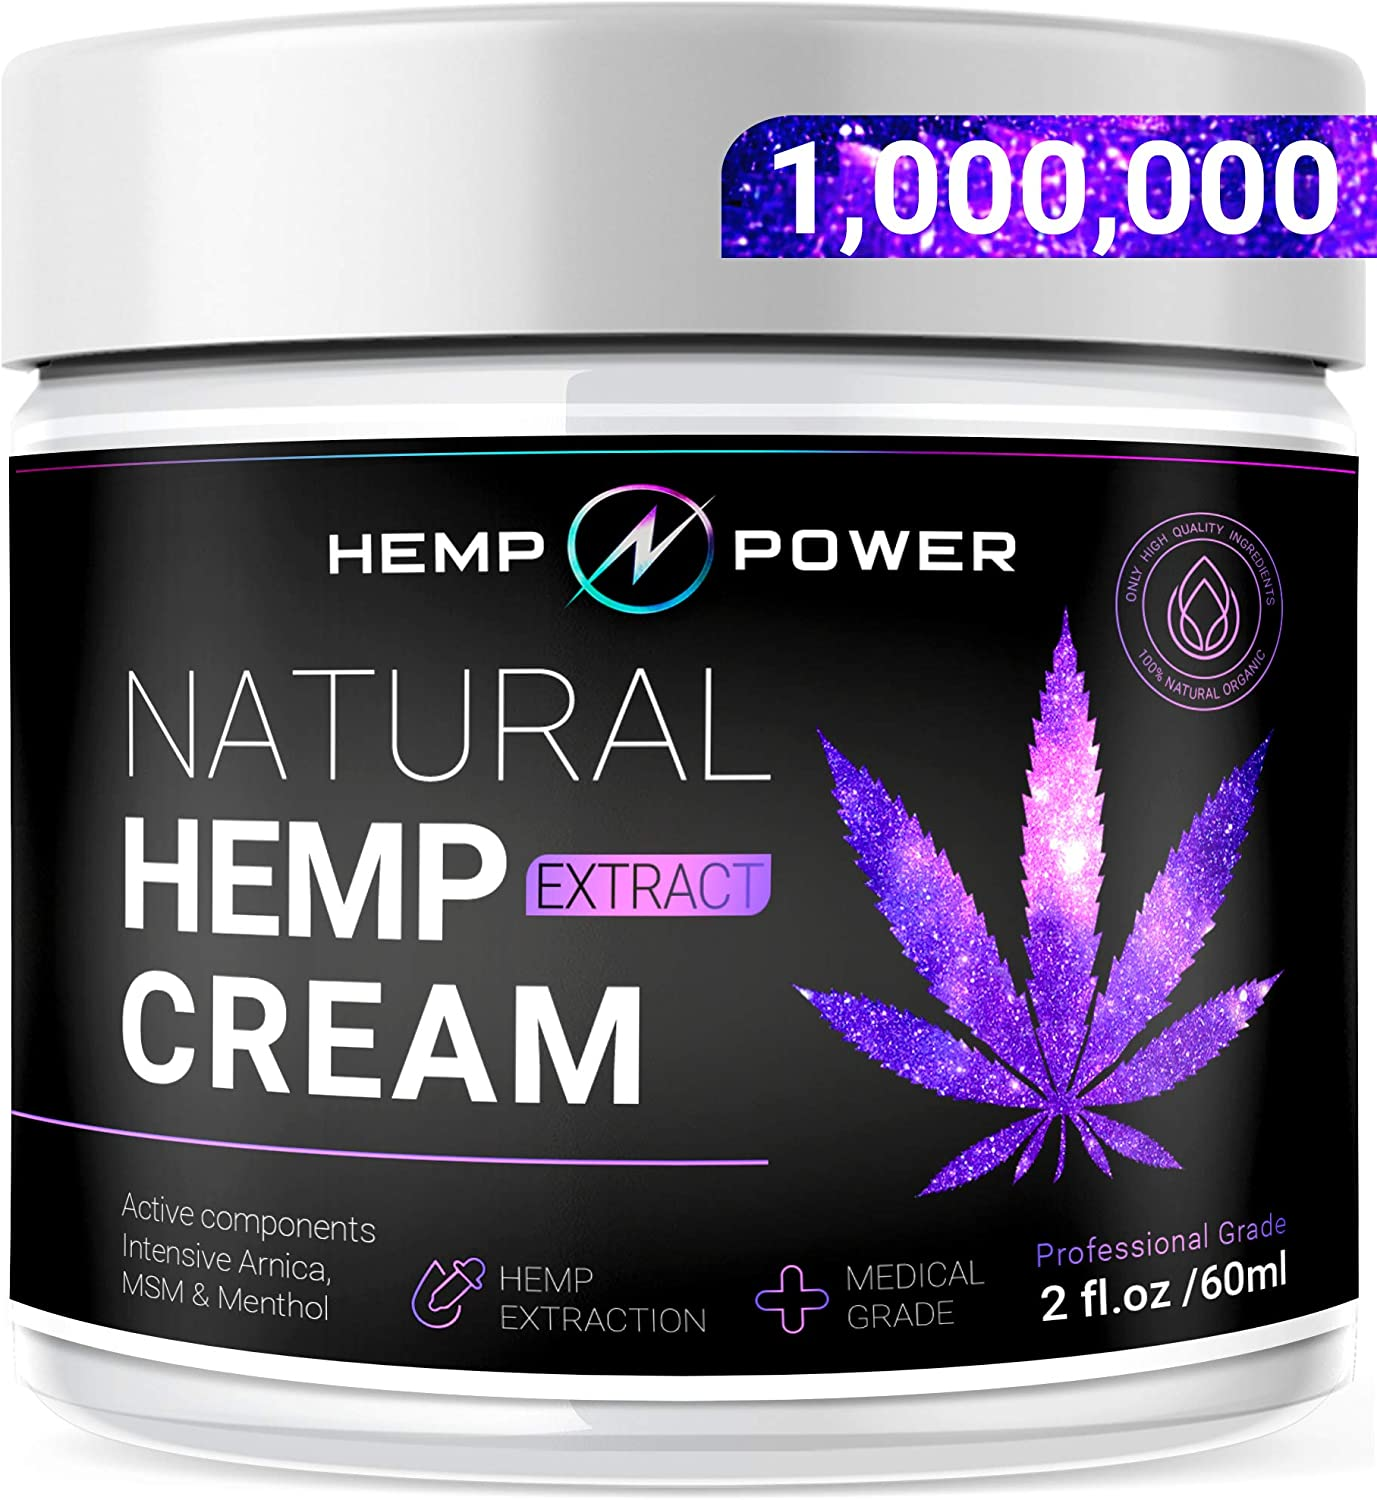 Hemp Power Pain Relief Cream -Relieves Muscle, Joint Pain, Lower Back Pain, Knees, and Fingers - Inflammation - Hemp Extract Remedy - Hemp Oil with MSM - Arnica 2fl oz